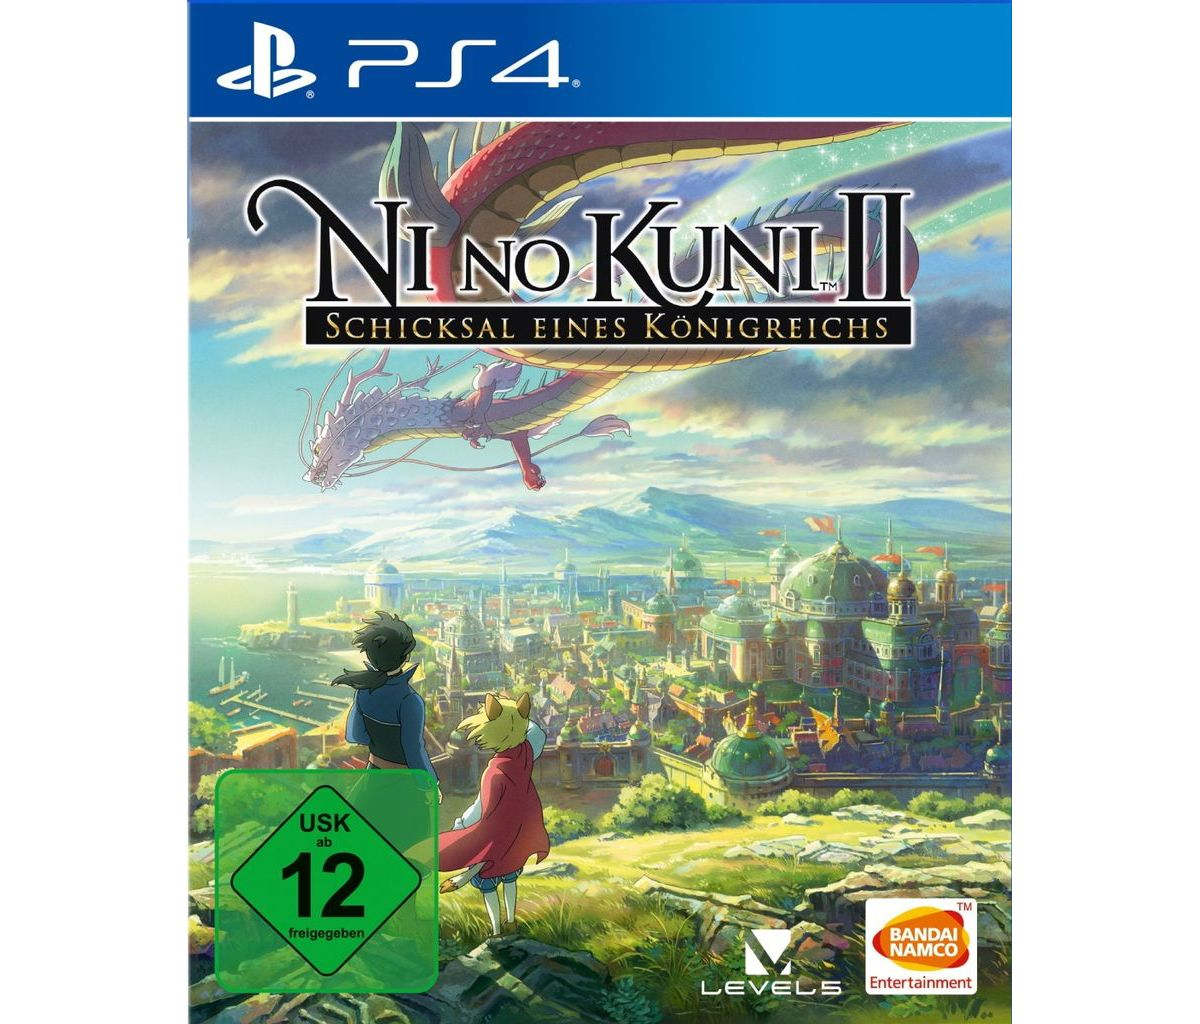 Bandai Playstation 4 - Spiel »Ni No Kuni 2: Sch...